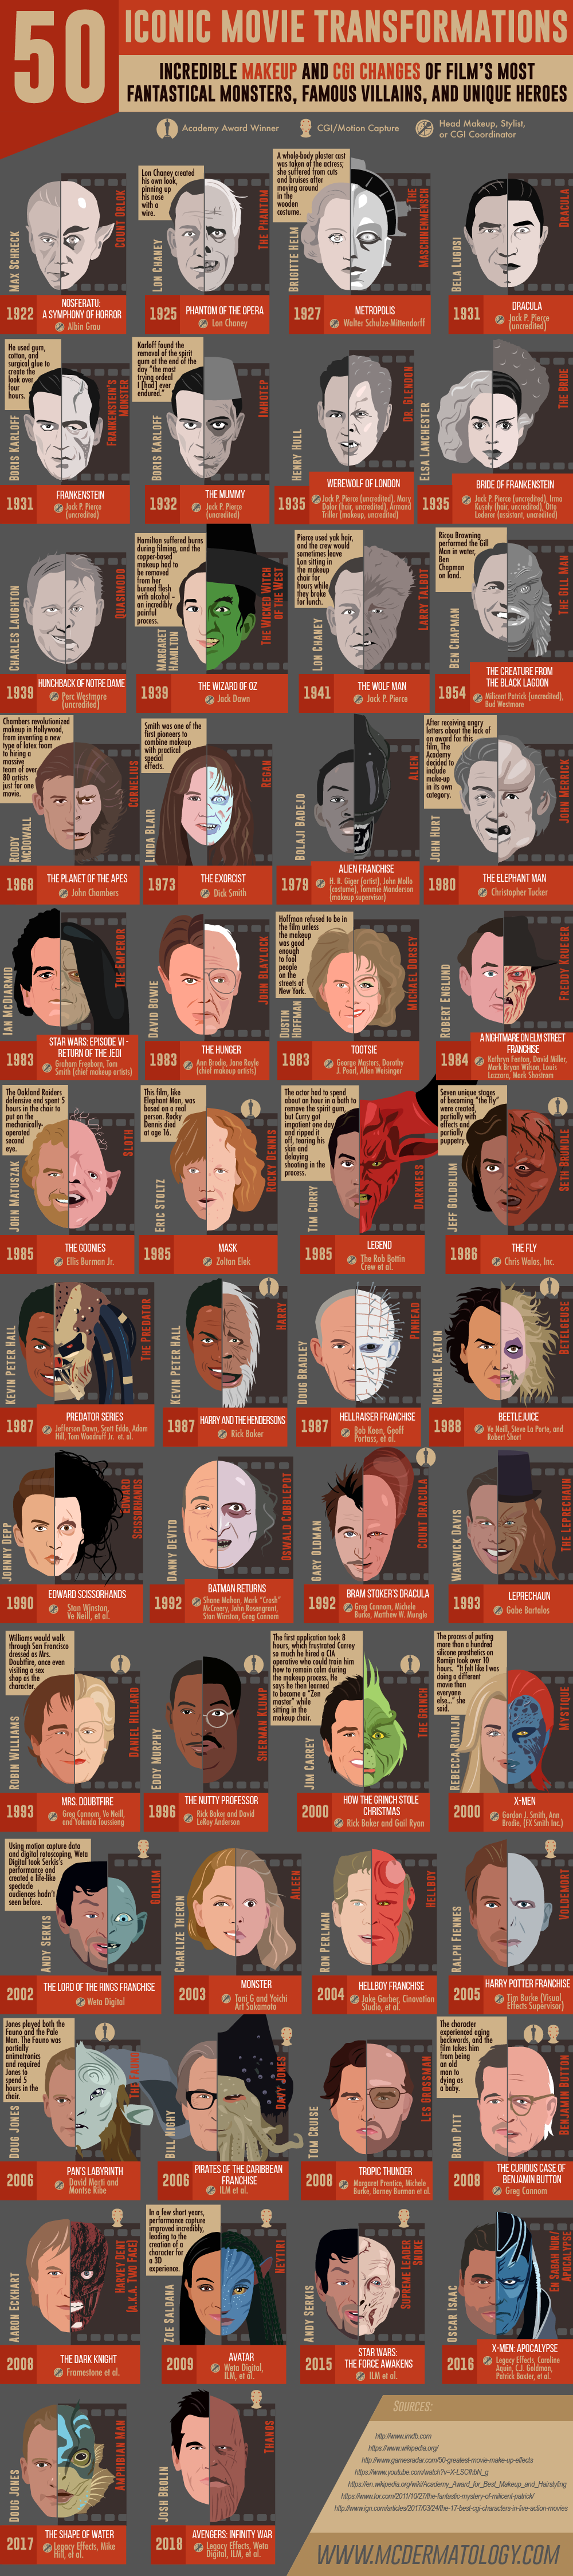 50 Iconic Movie Transformations: Incredible Makeup and CGI in Film #Infographic